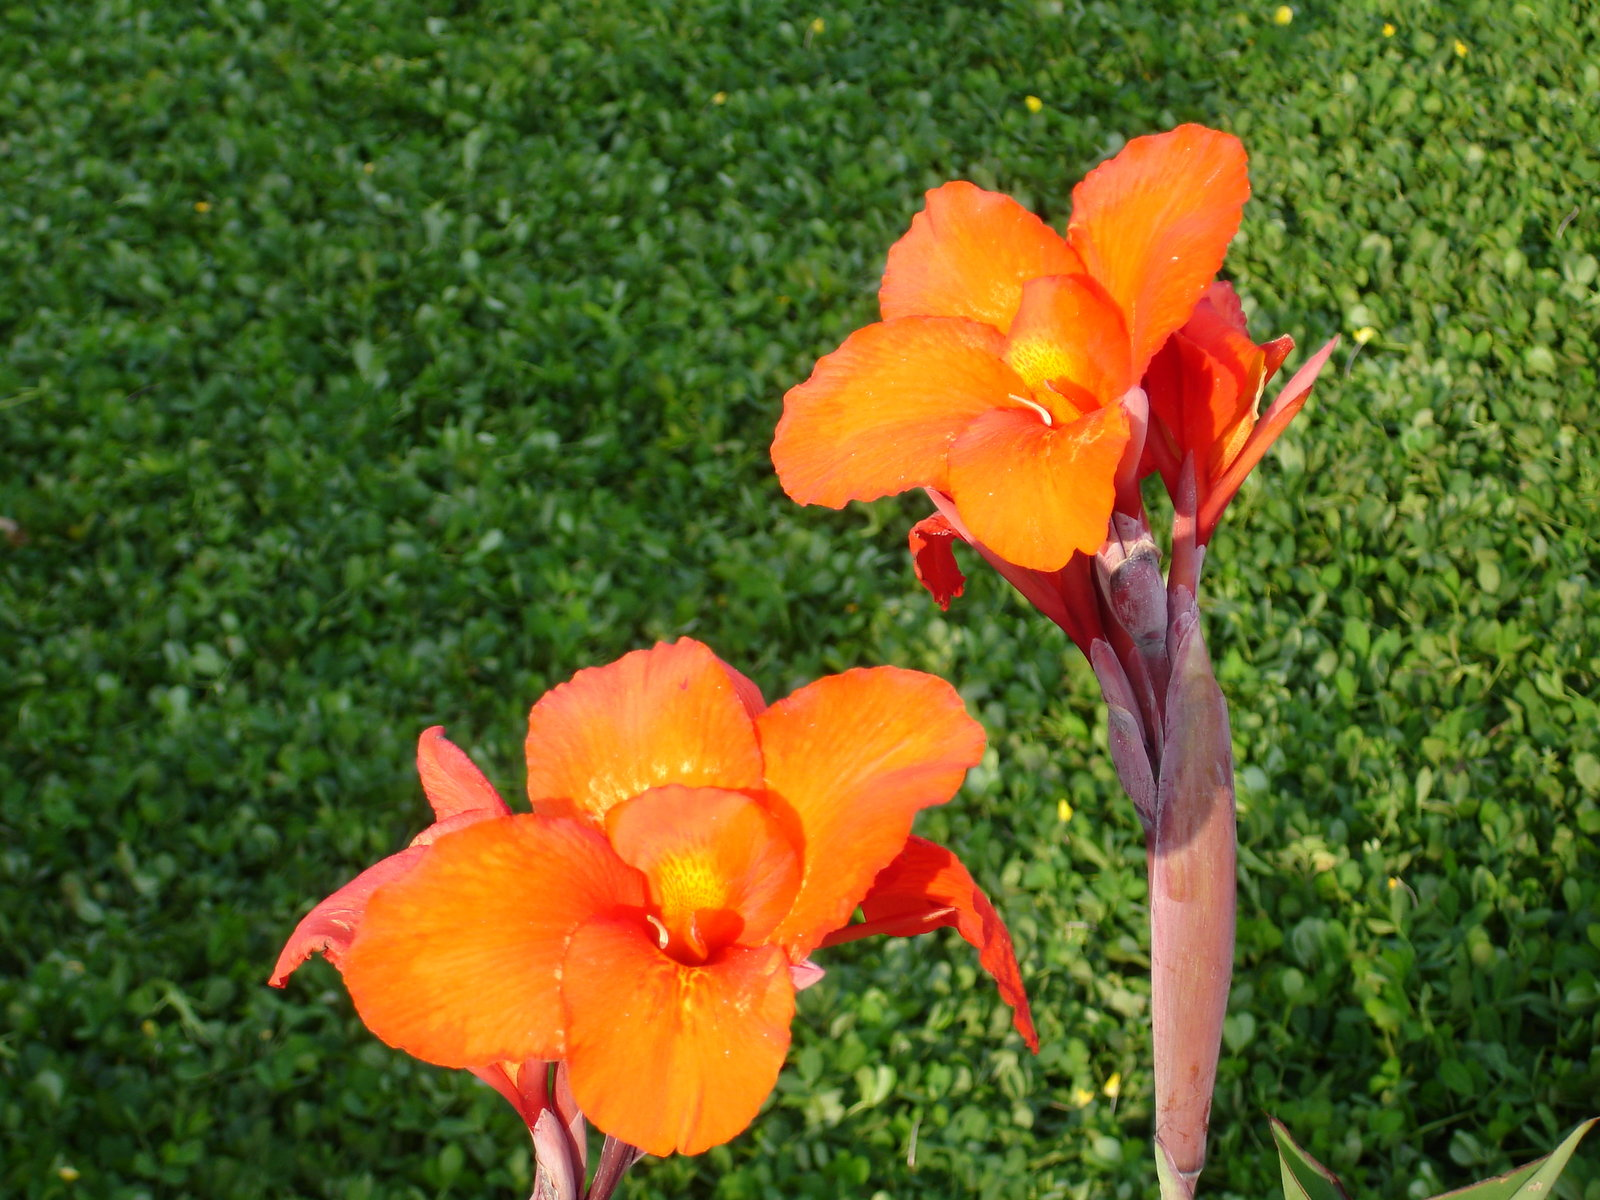 Free Download HD Wallpaper Picture Orange Canna Lily Indica Flower